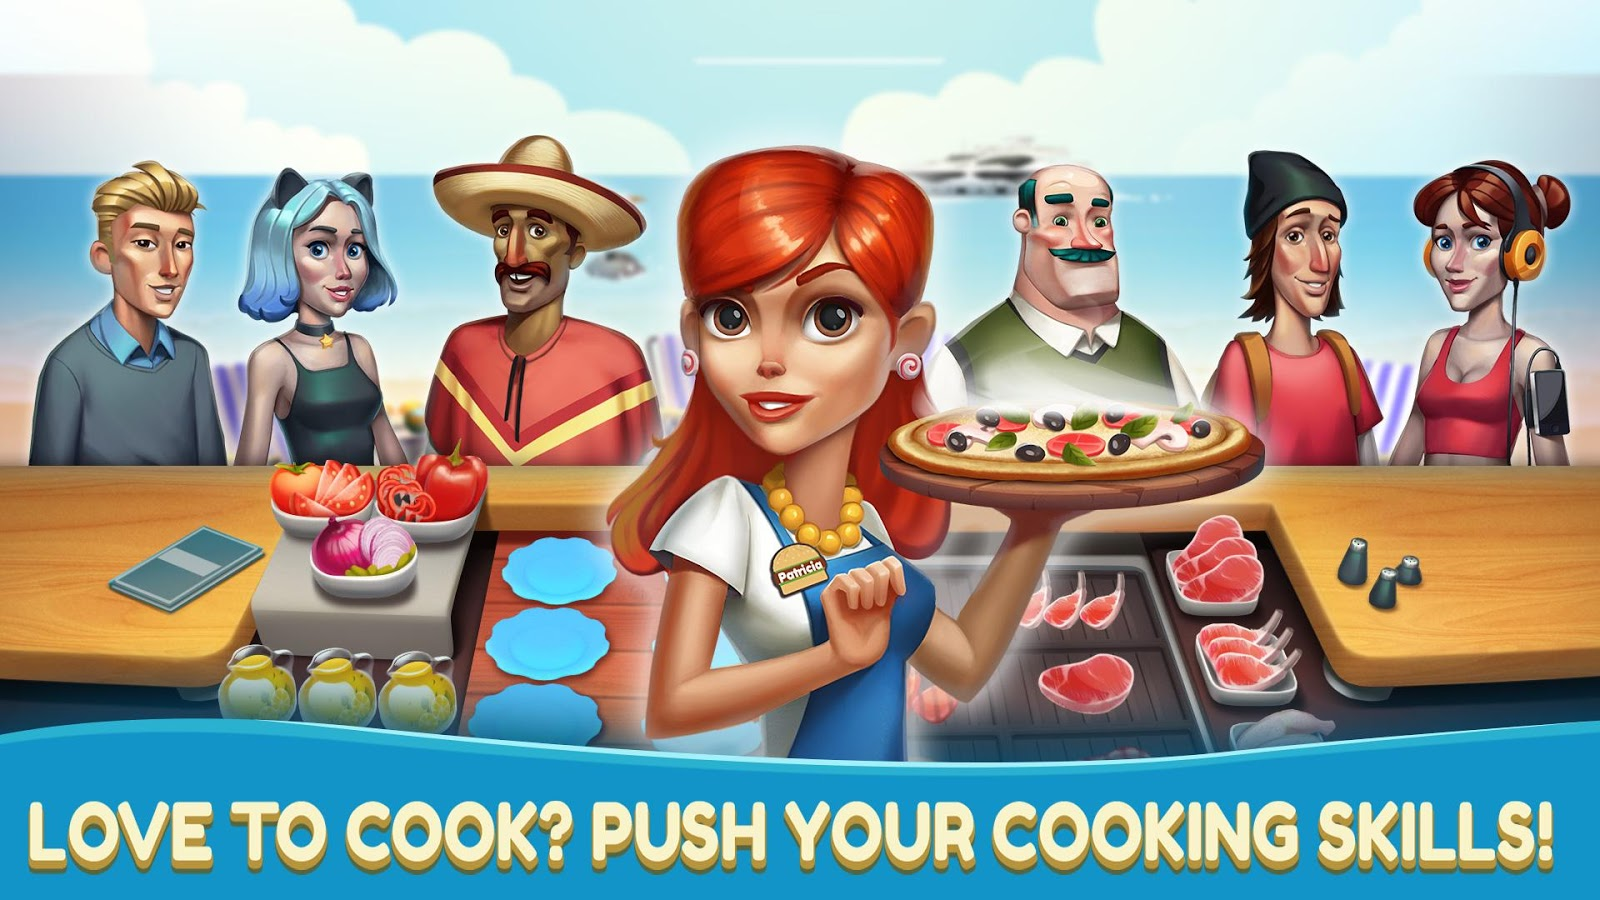 Game to cook - Cooking Games Cafe Chef Food Fever Restaurant Screenshot